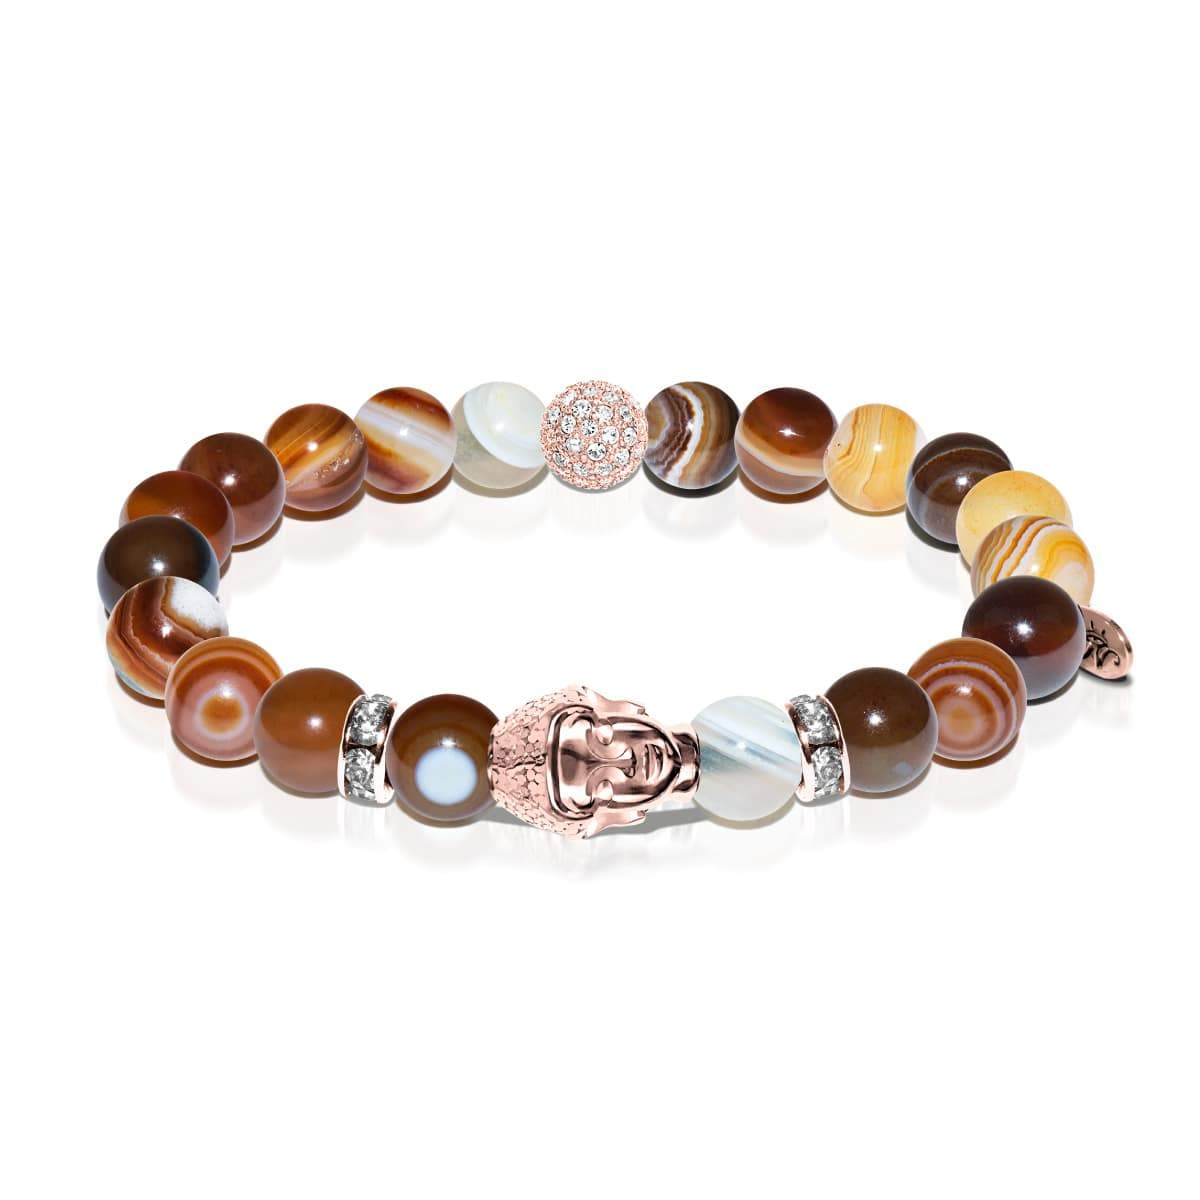 Tao | Bouddha en or rose | Bracelet agate rayé marron clair